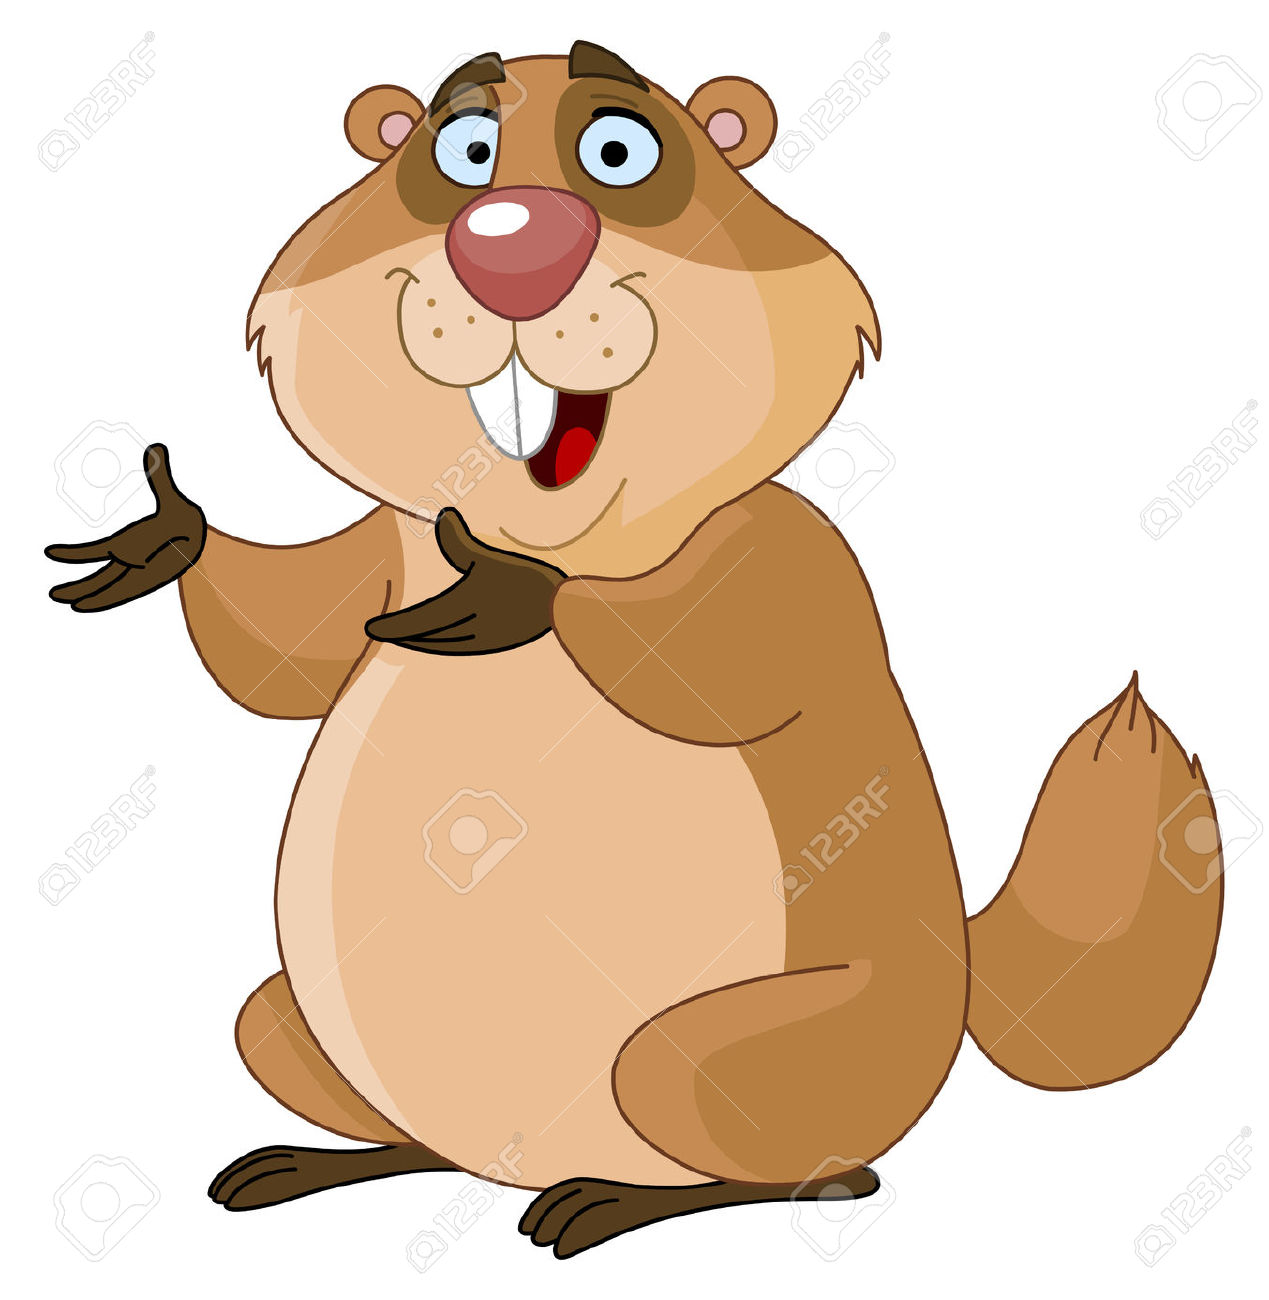 Free Groundhog Clipart. Groundhog Stock Vector - .